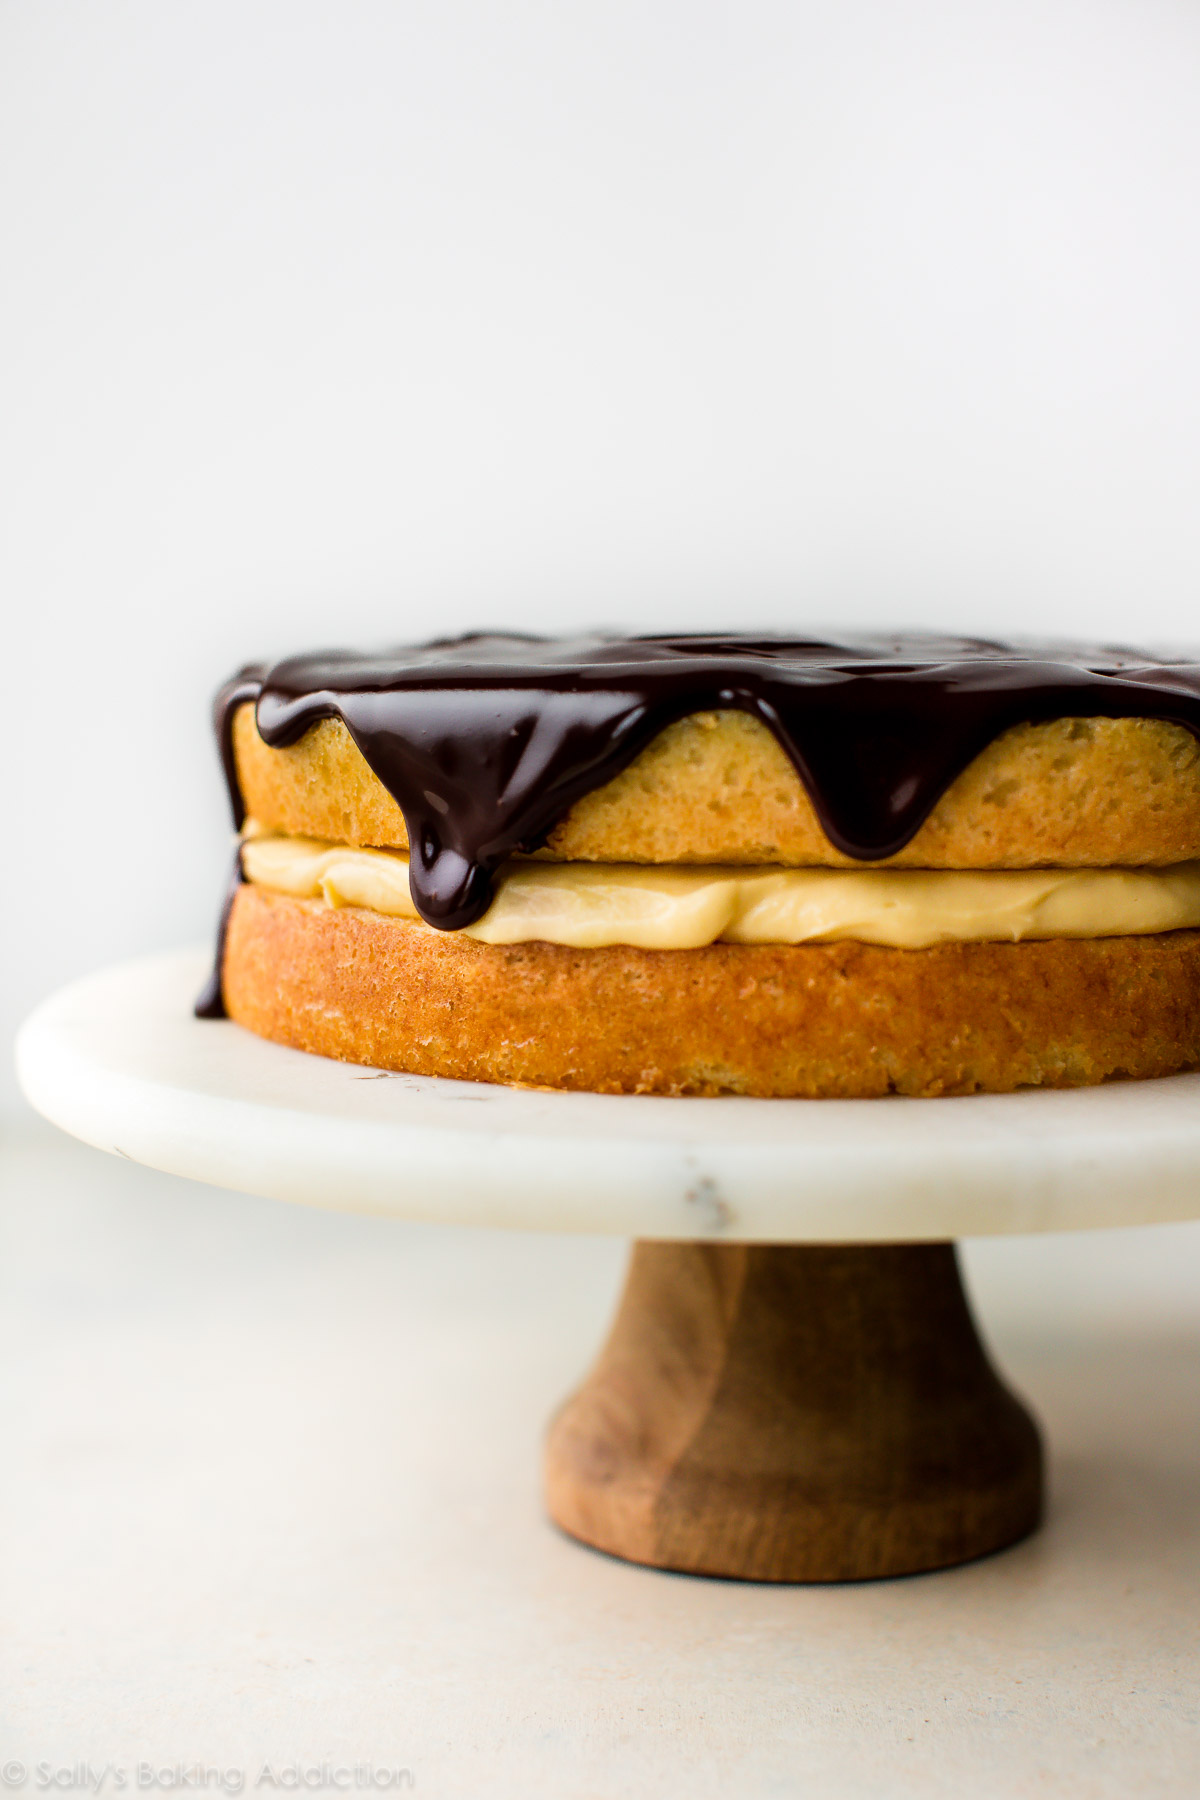 Completely from-scratch with homemade pastry cream, buttery sponge cake, and shiny chocolate glaze, this classic Boston cream pie recipe is supremely decadent and satisfying. Recipe on sallysbakingaddiction.com